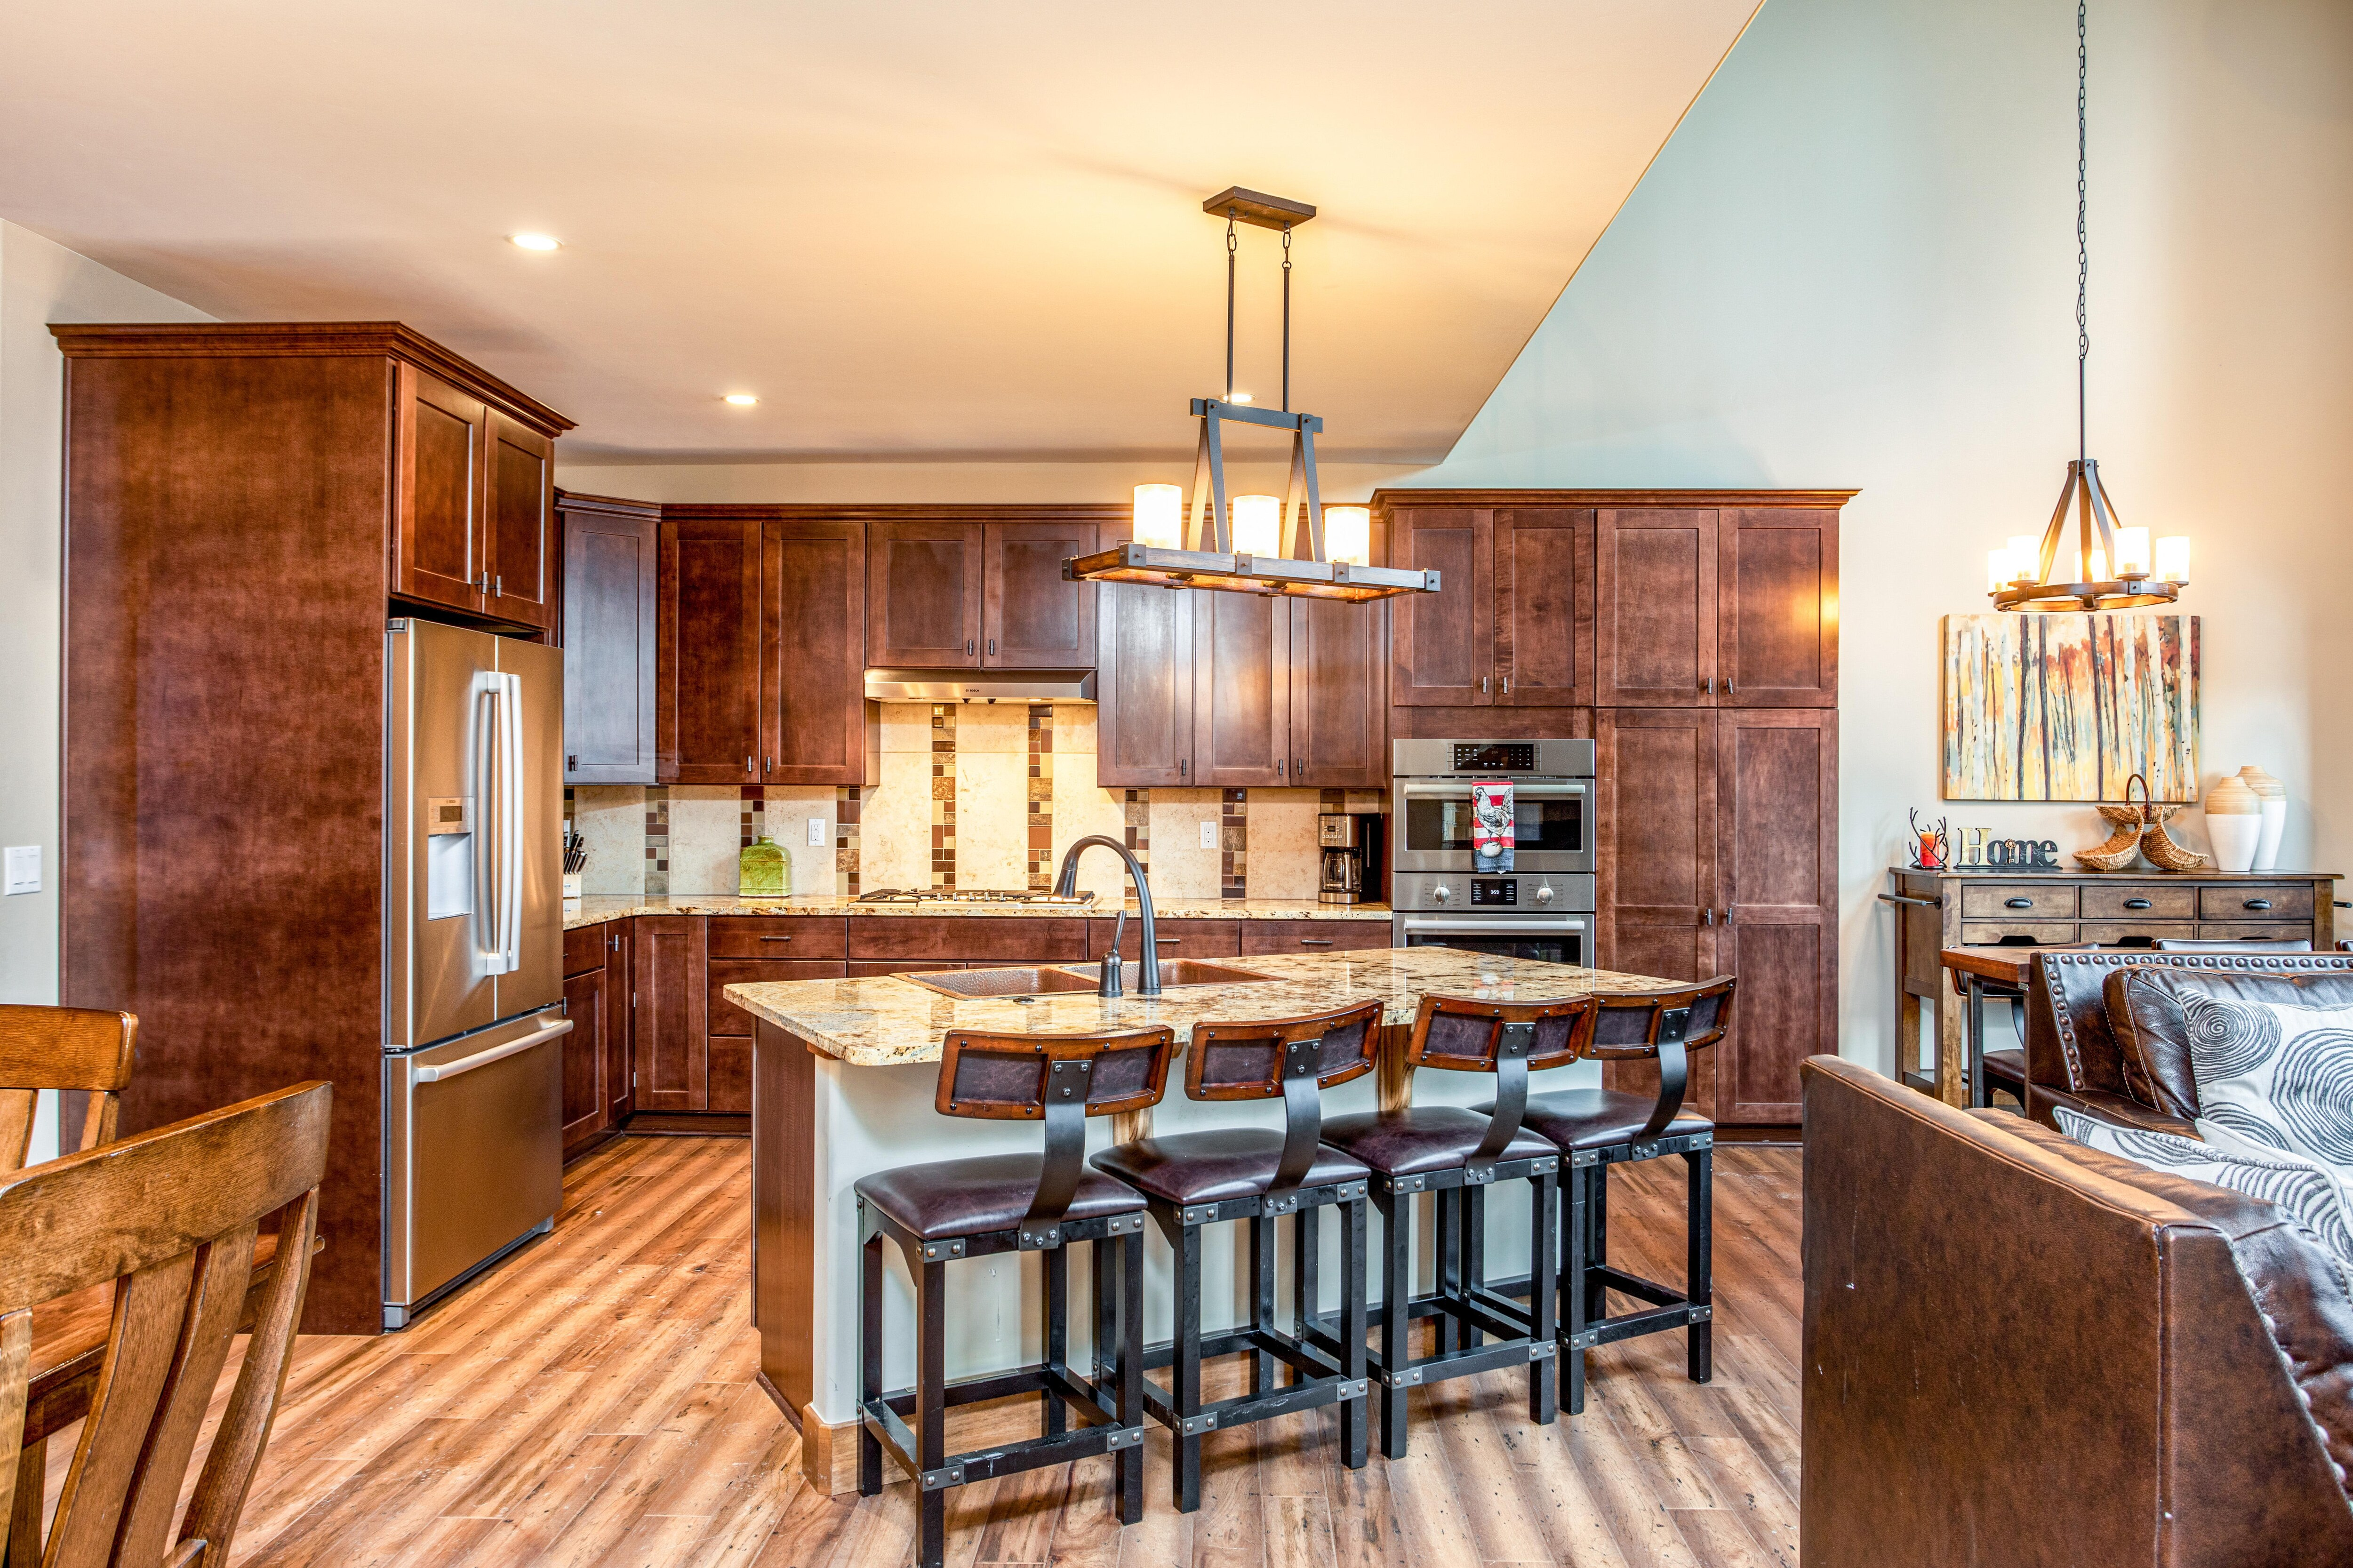 Unit 1: Granite countertops and stainless steel appliances shine in the well-equipped kitchen.